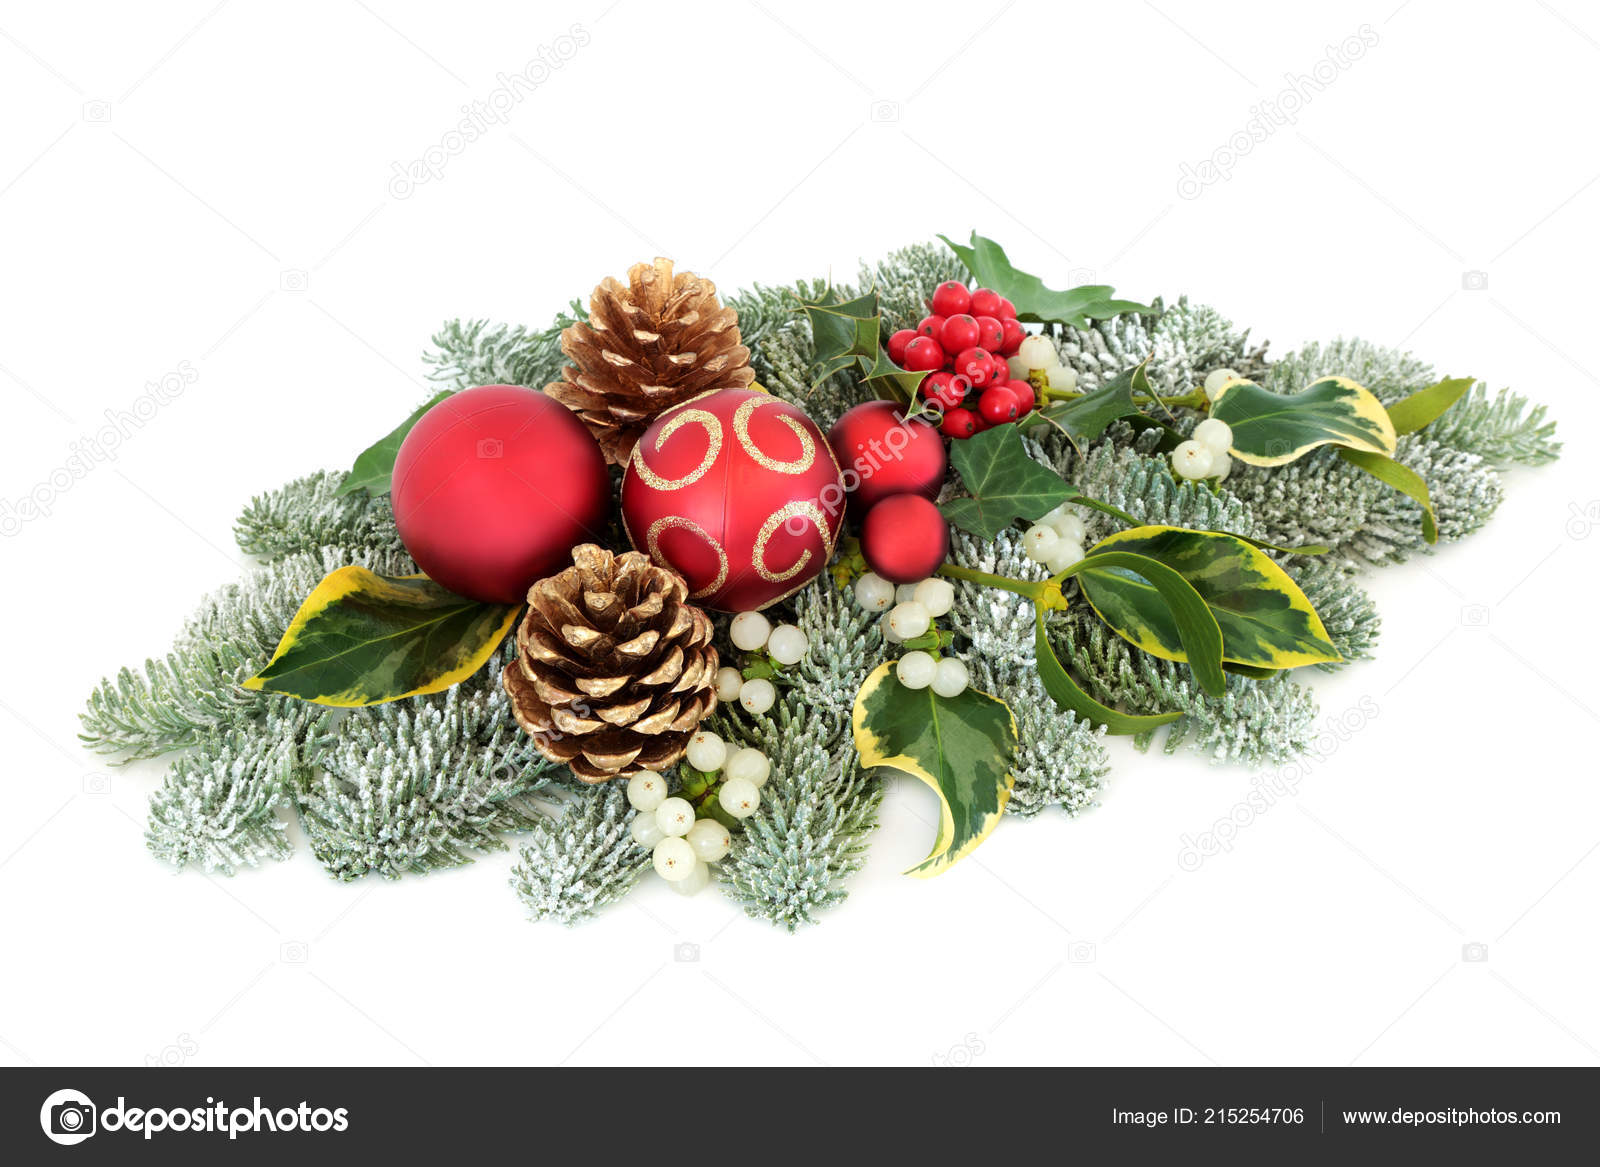 Christmas Winter Table Decoration Bauble Decorations Holly Berries